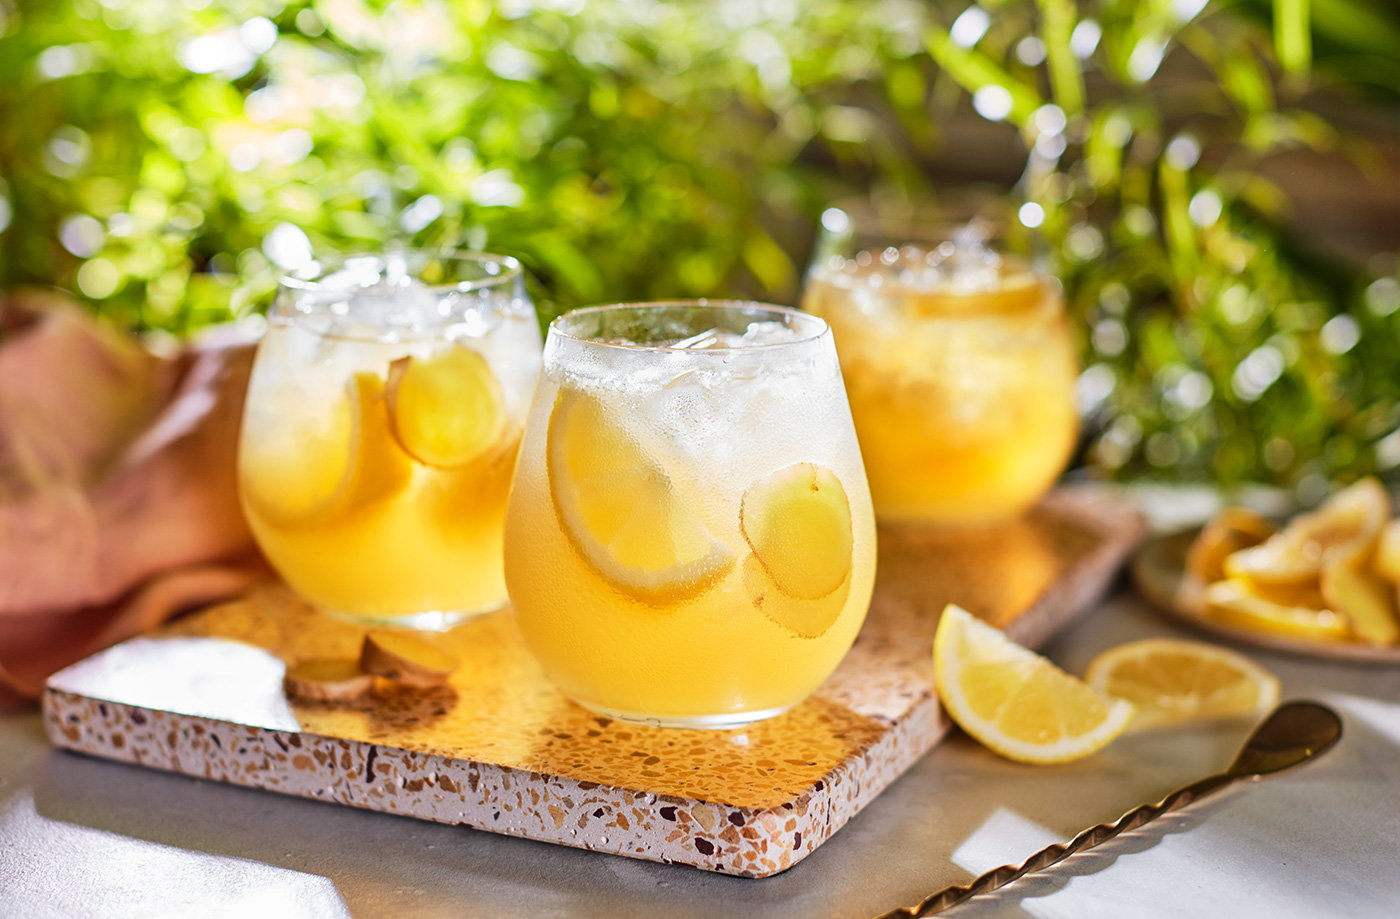 Ginger beertail recipe